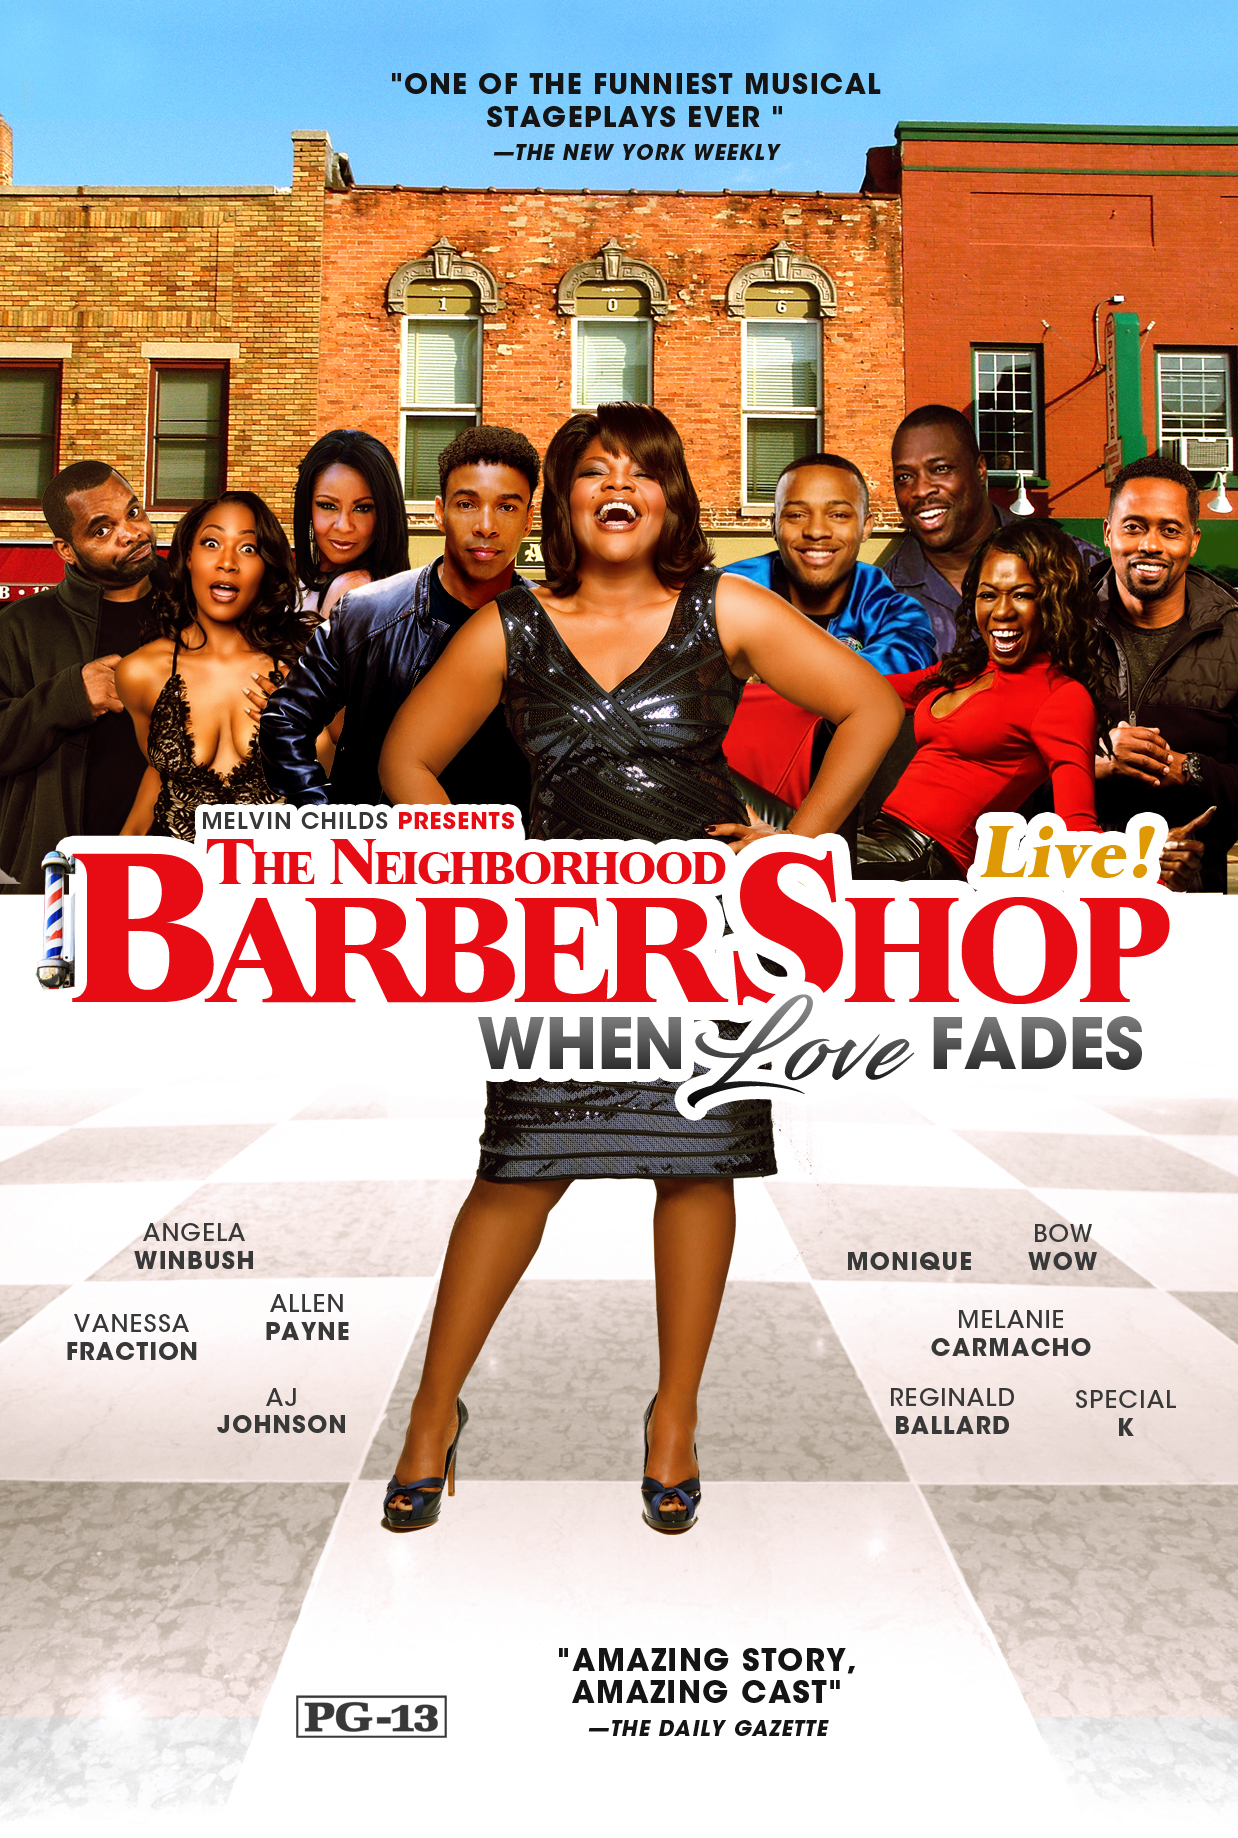 Barbershop Shop The Stage Play